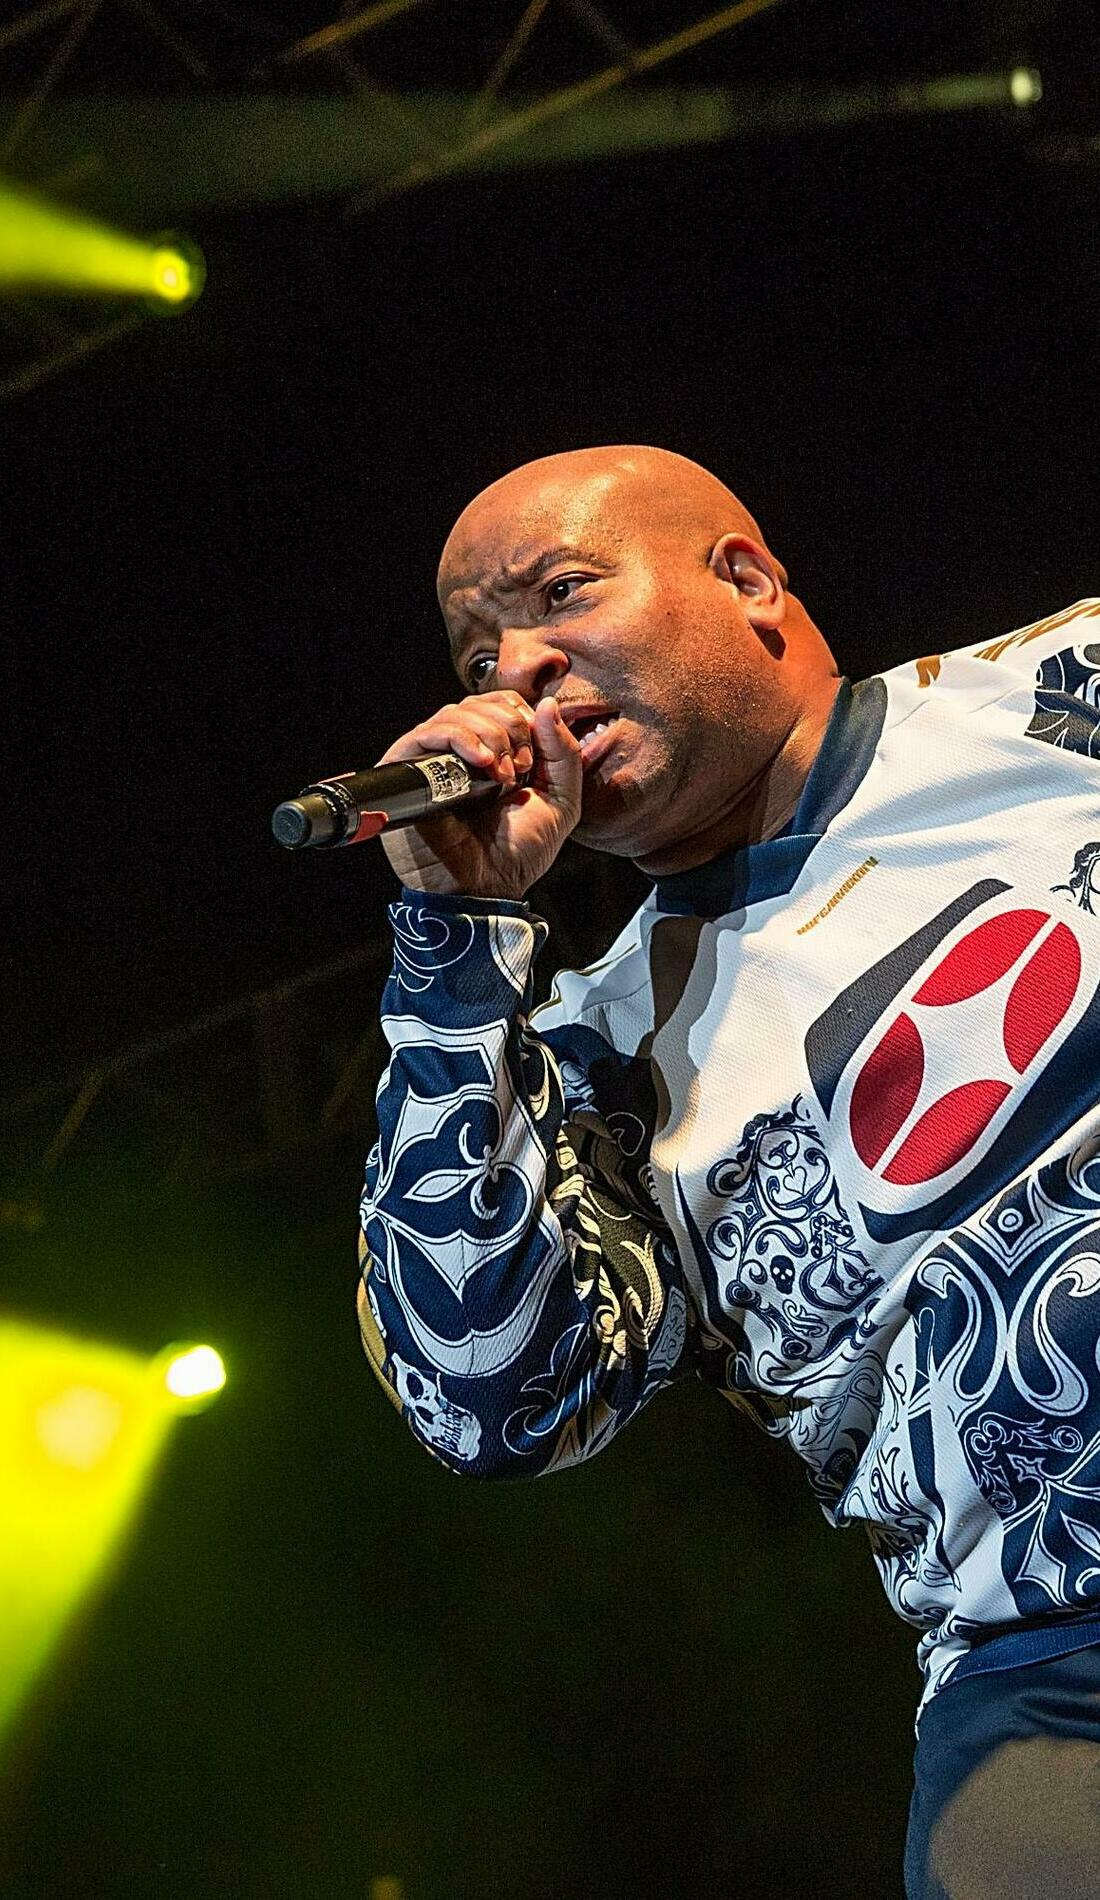 A Young MC live event